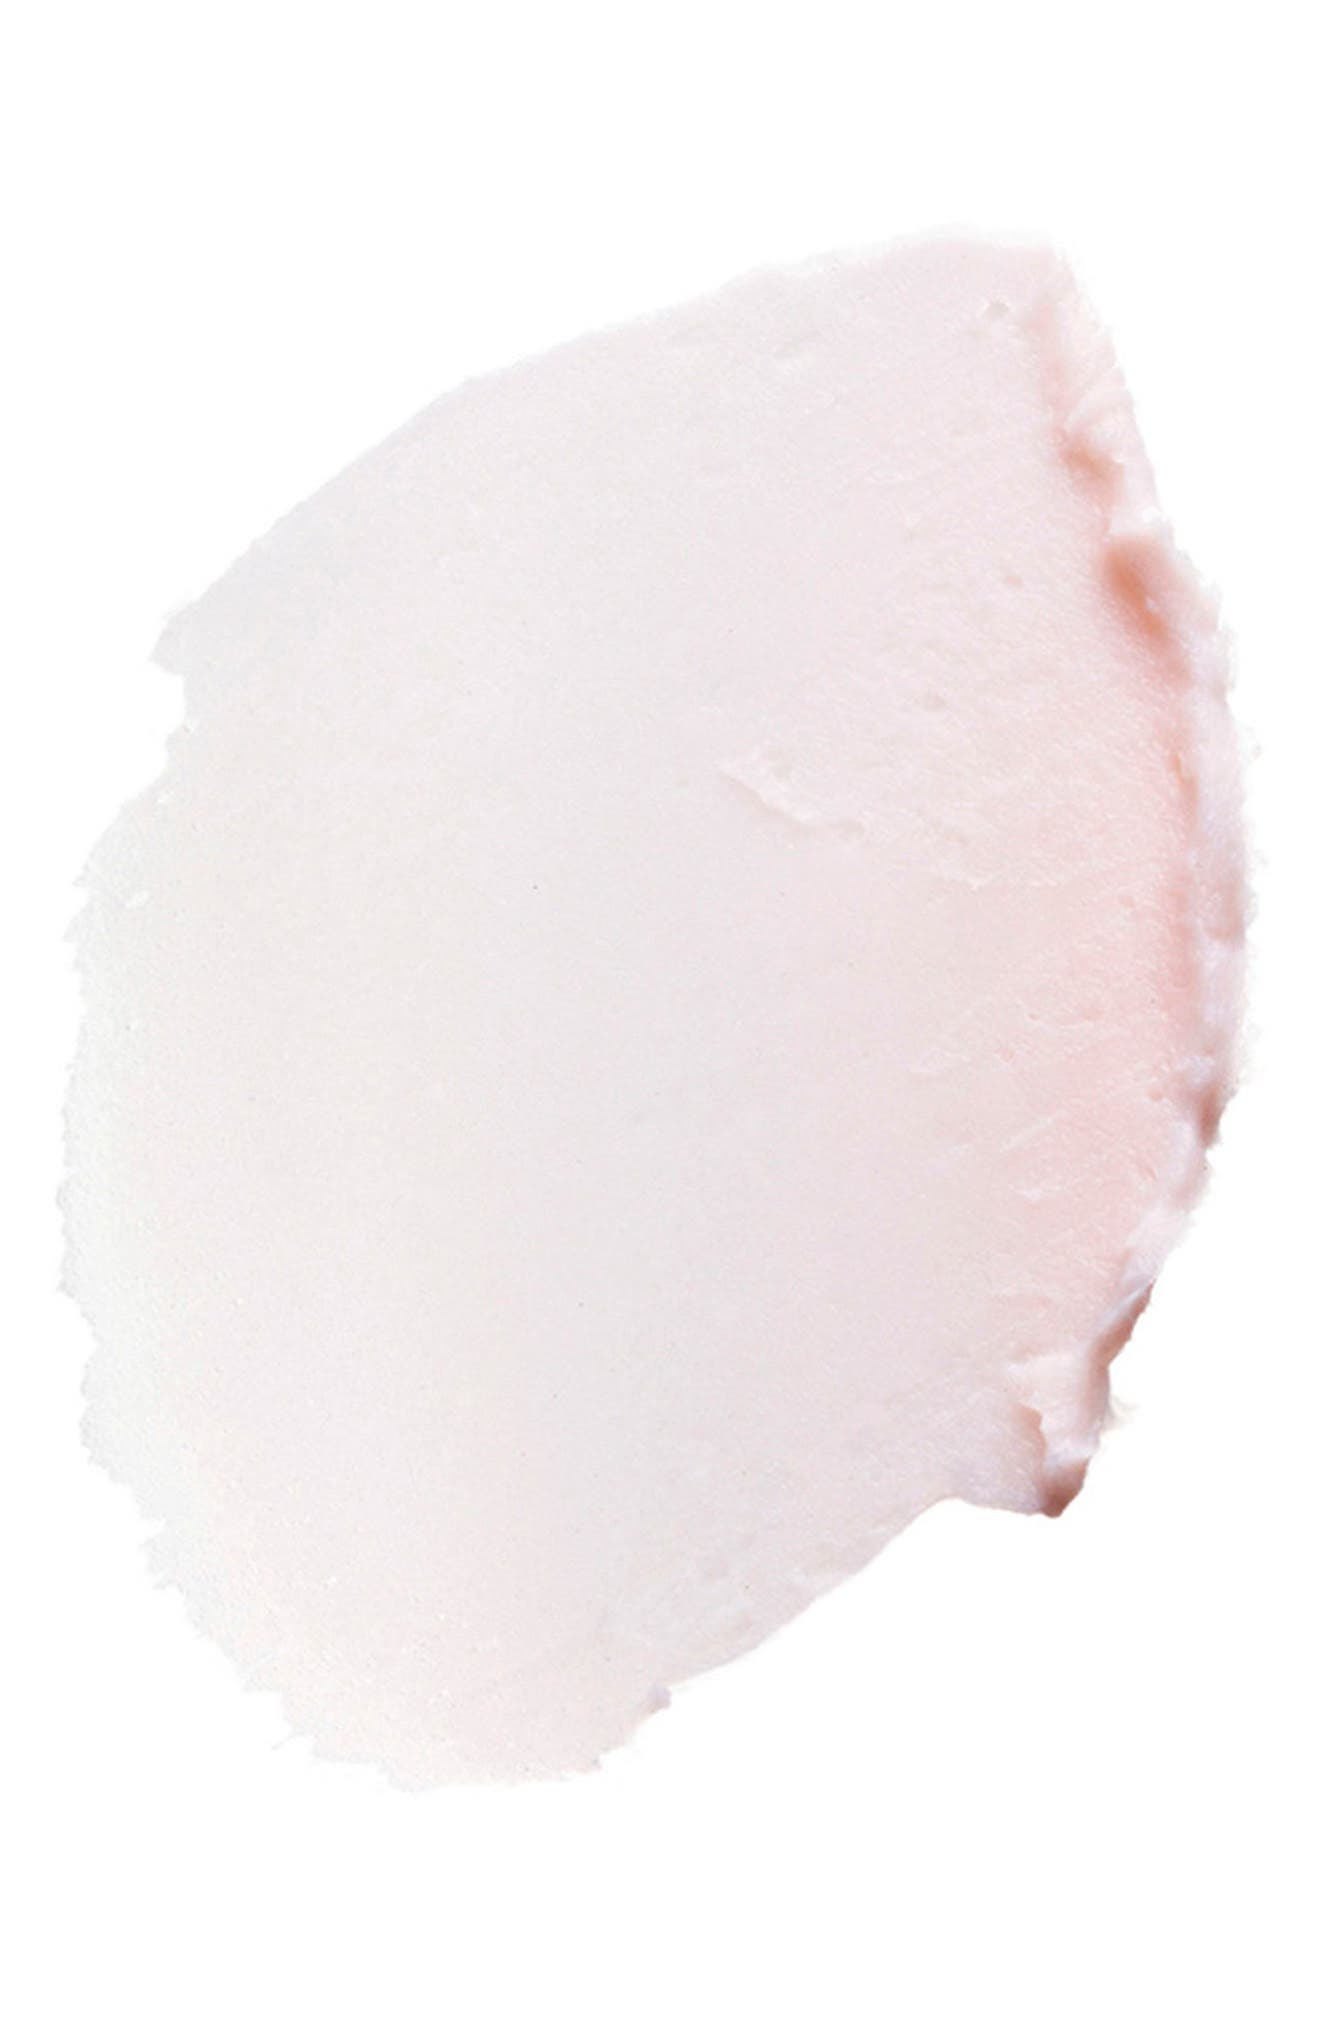 CLARINS, Instant Smooth Perfecting Touch, Alternate thumbnail 2, color, NO COLOR